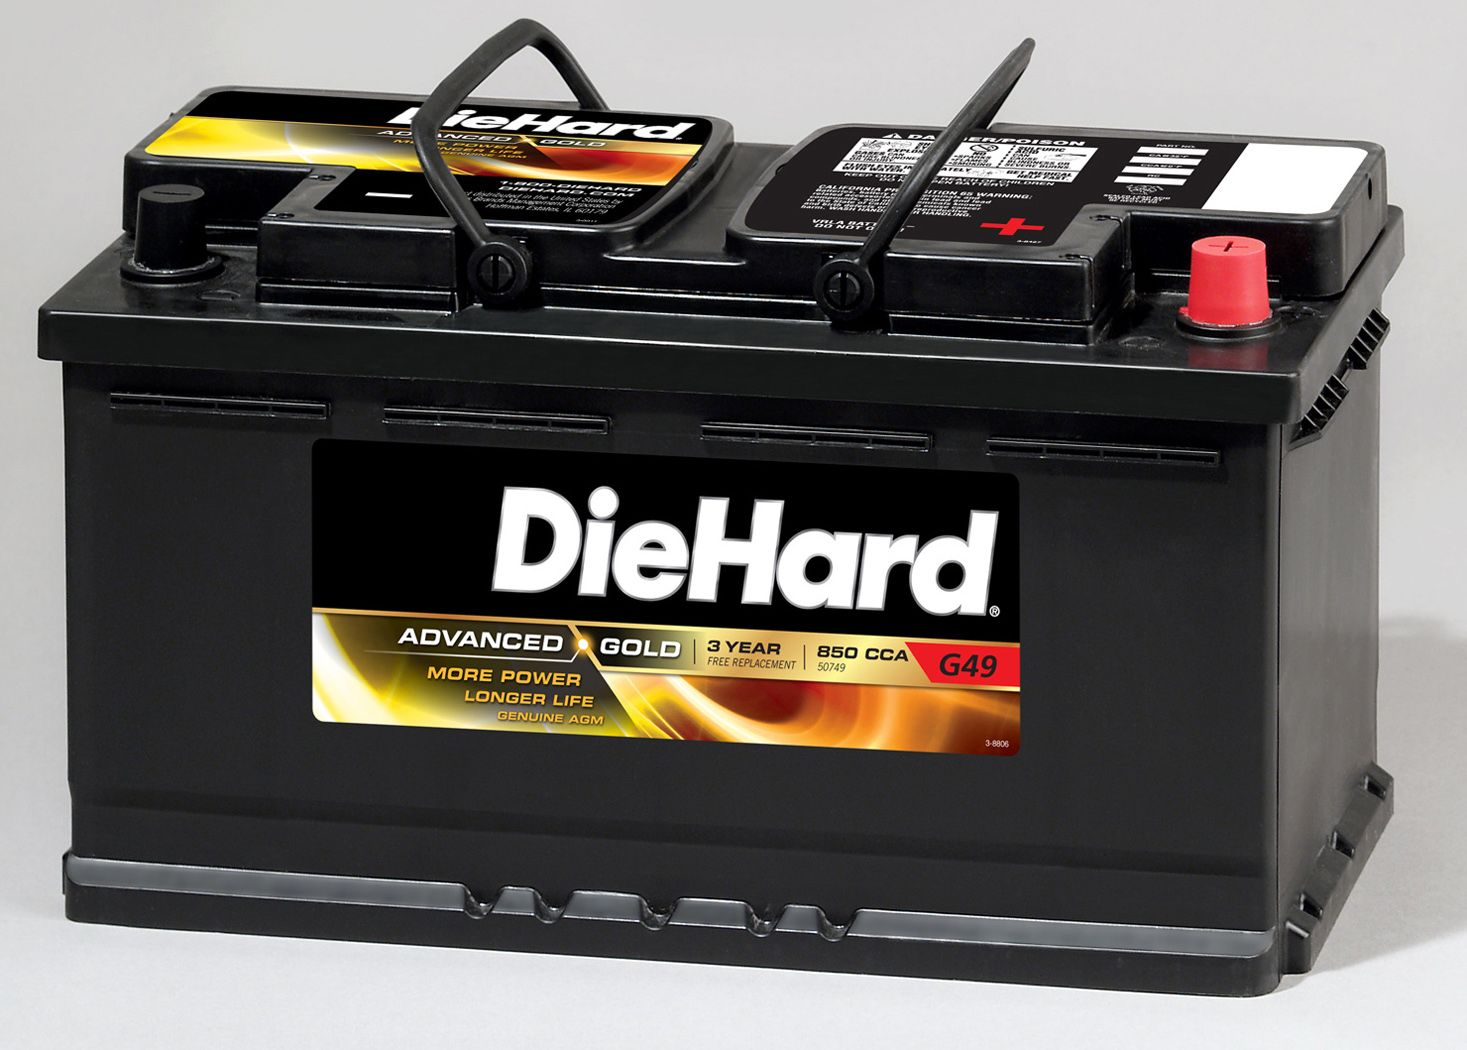 diehard gold agm automotive battery group size ep 49 price with exchange  [ 1467 x 1050 Pixel ]